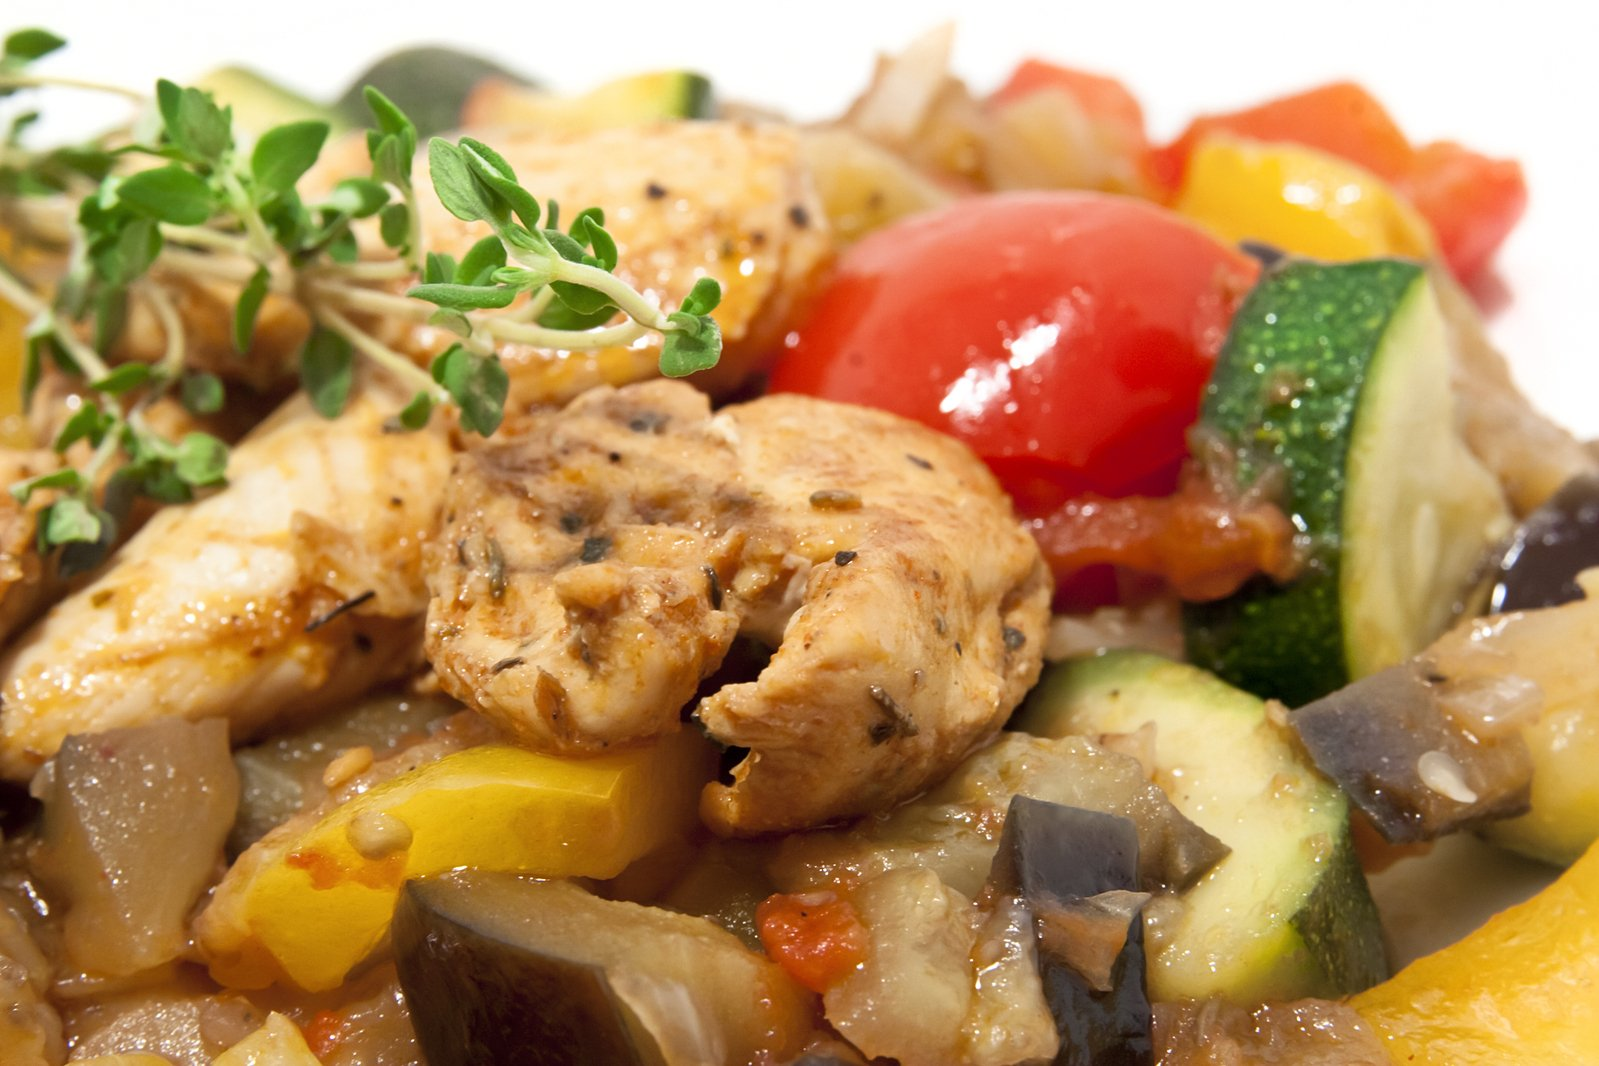 Pan-fried vegetables with Chicken series